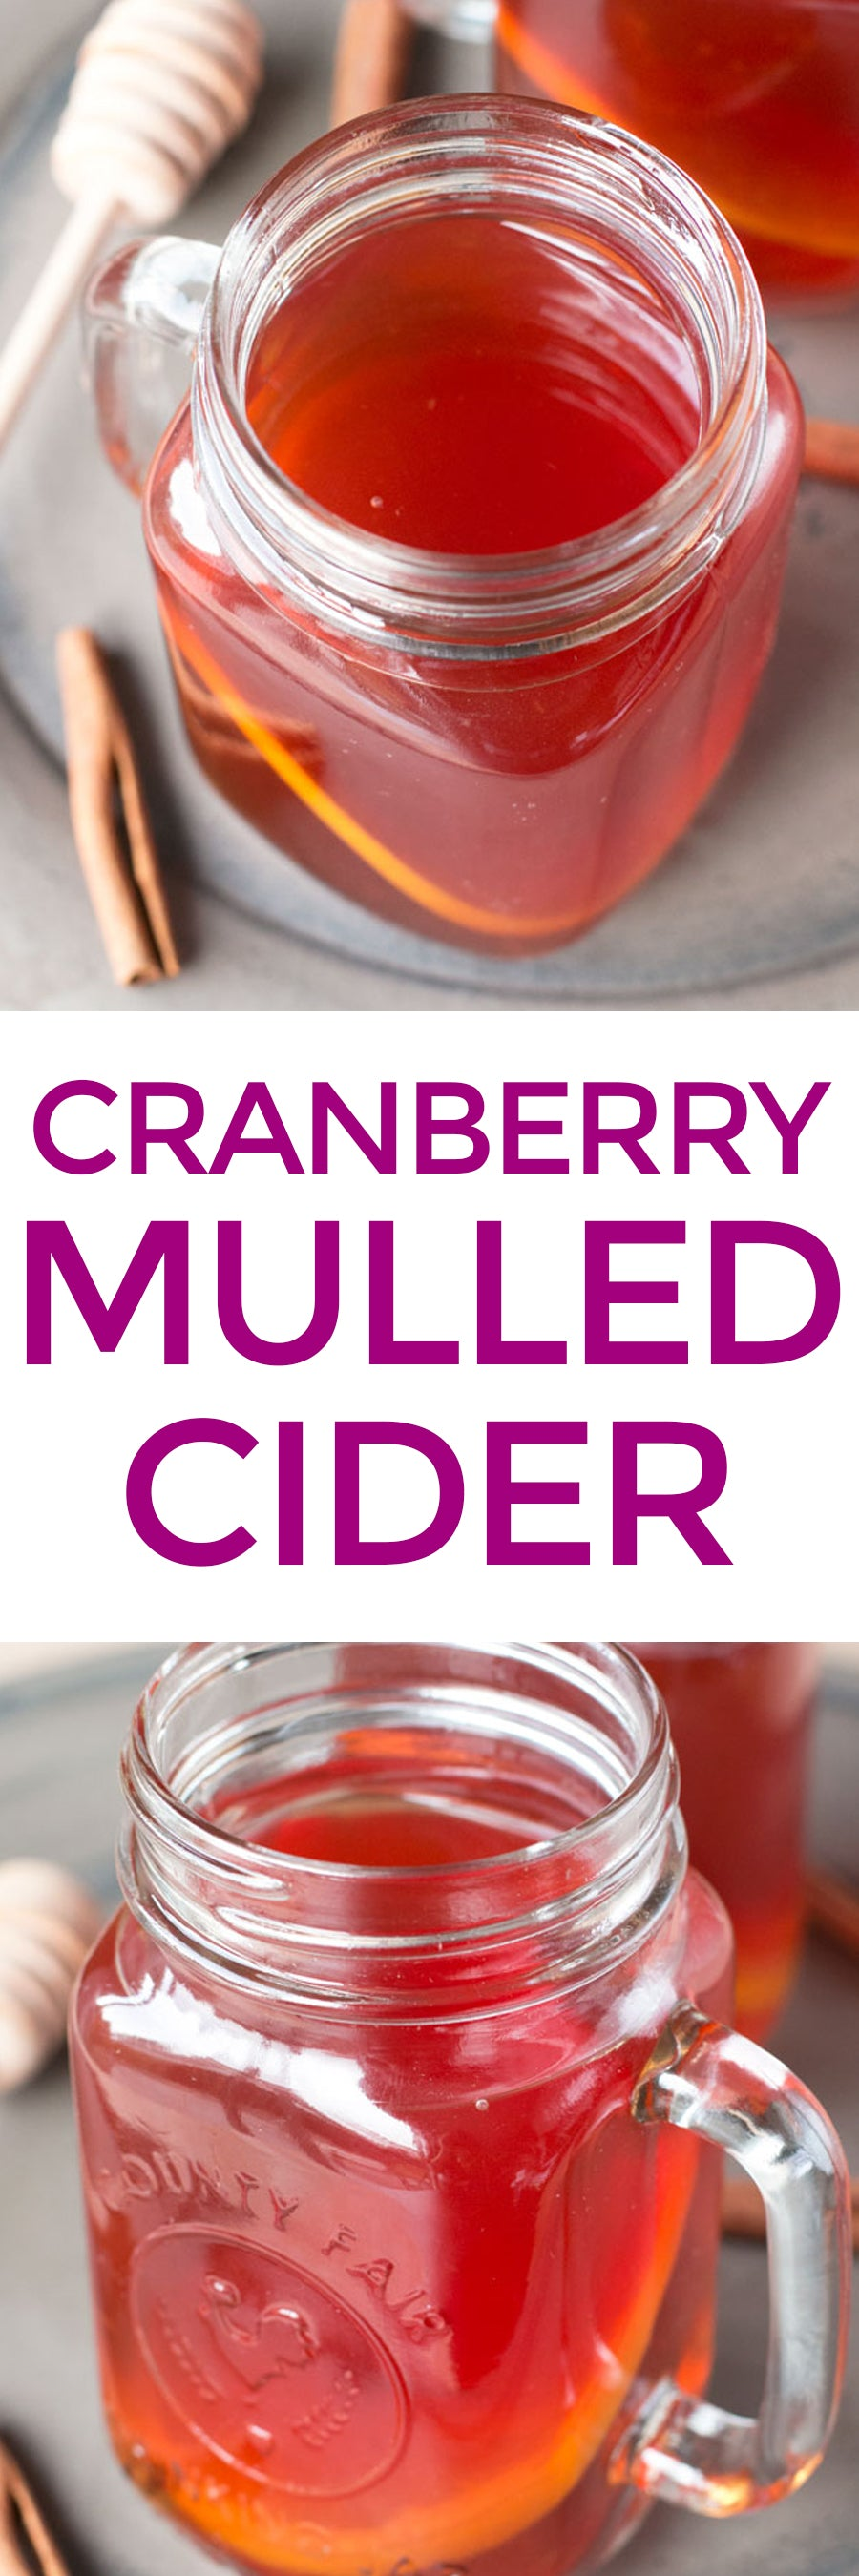 Cranberry Mulled Cider | pigofthemonth.com #mulledcider #holiday #christmas